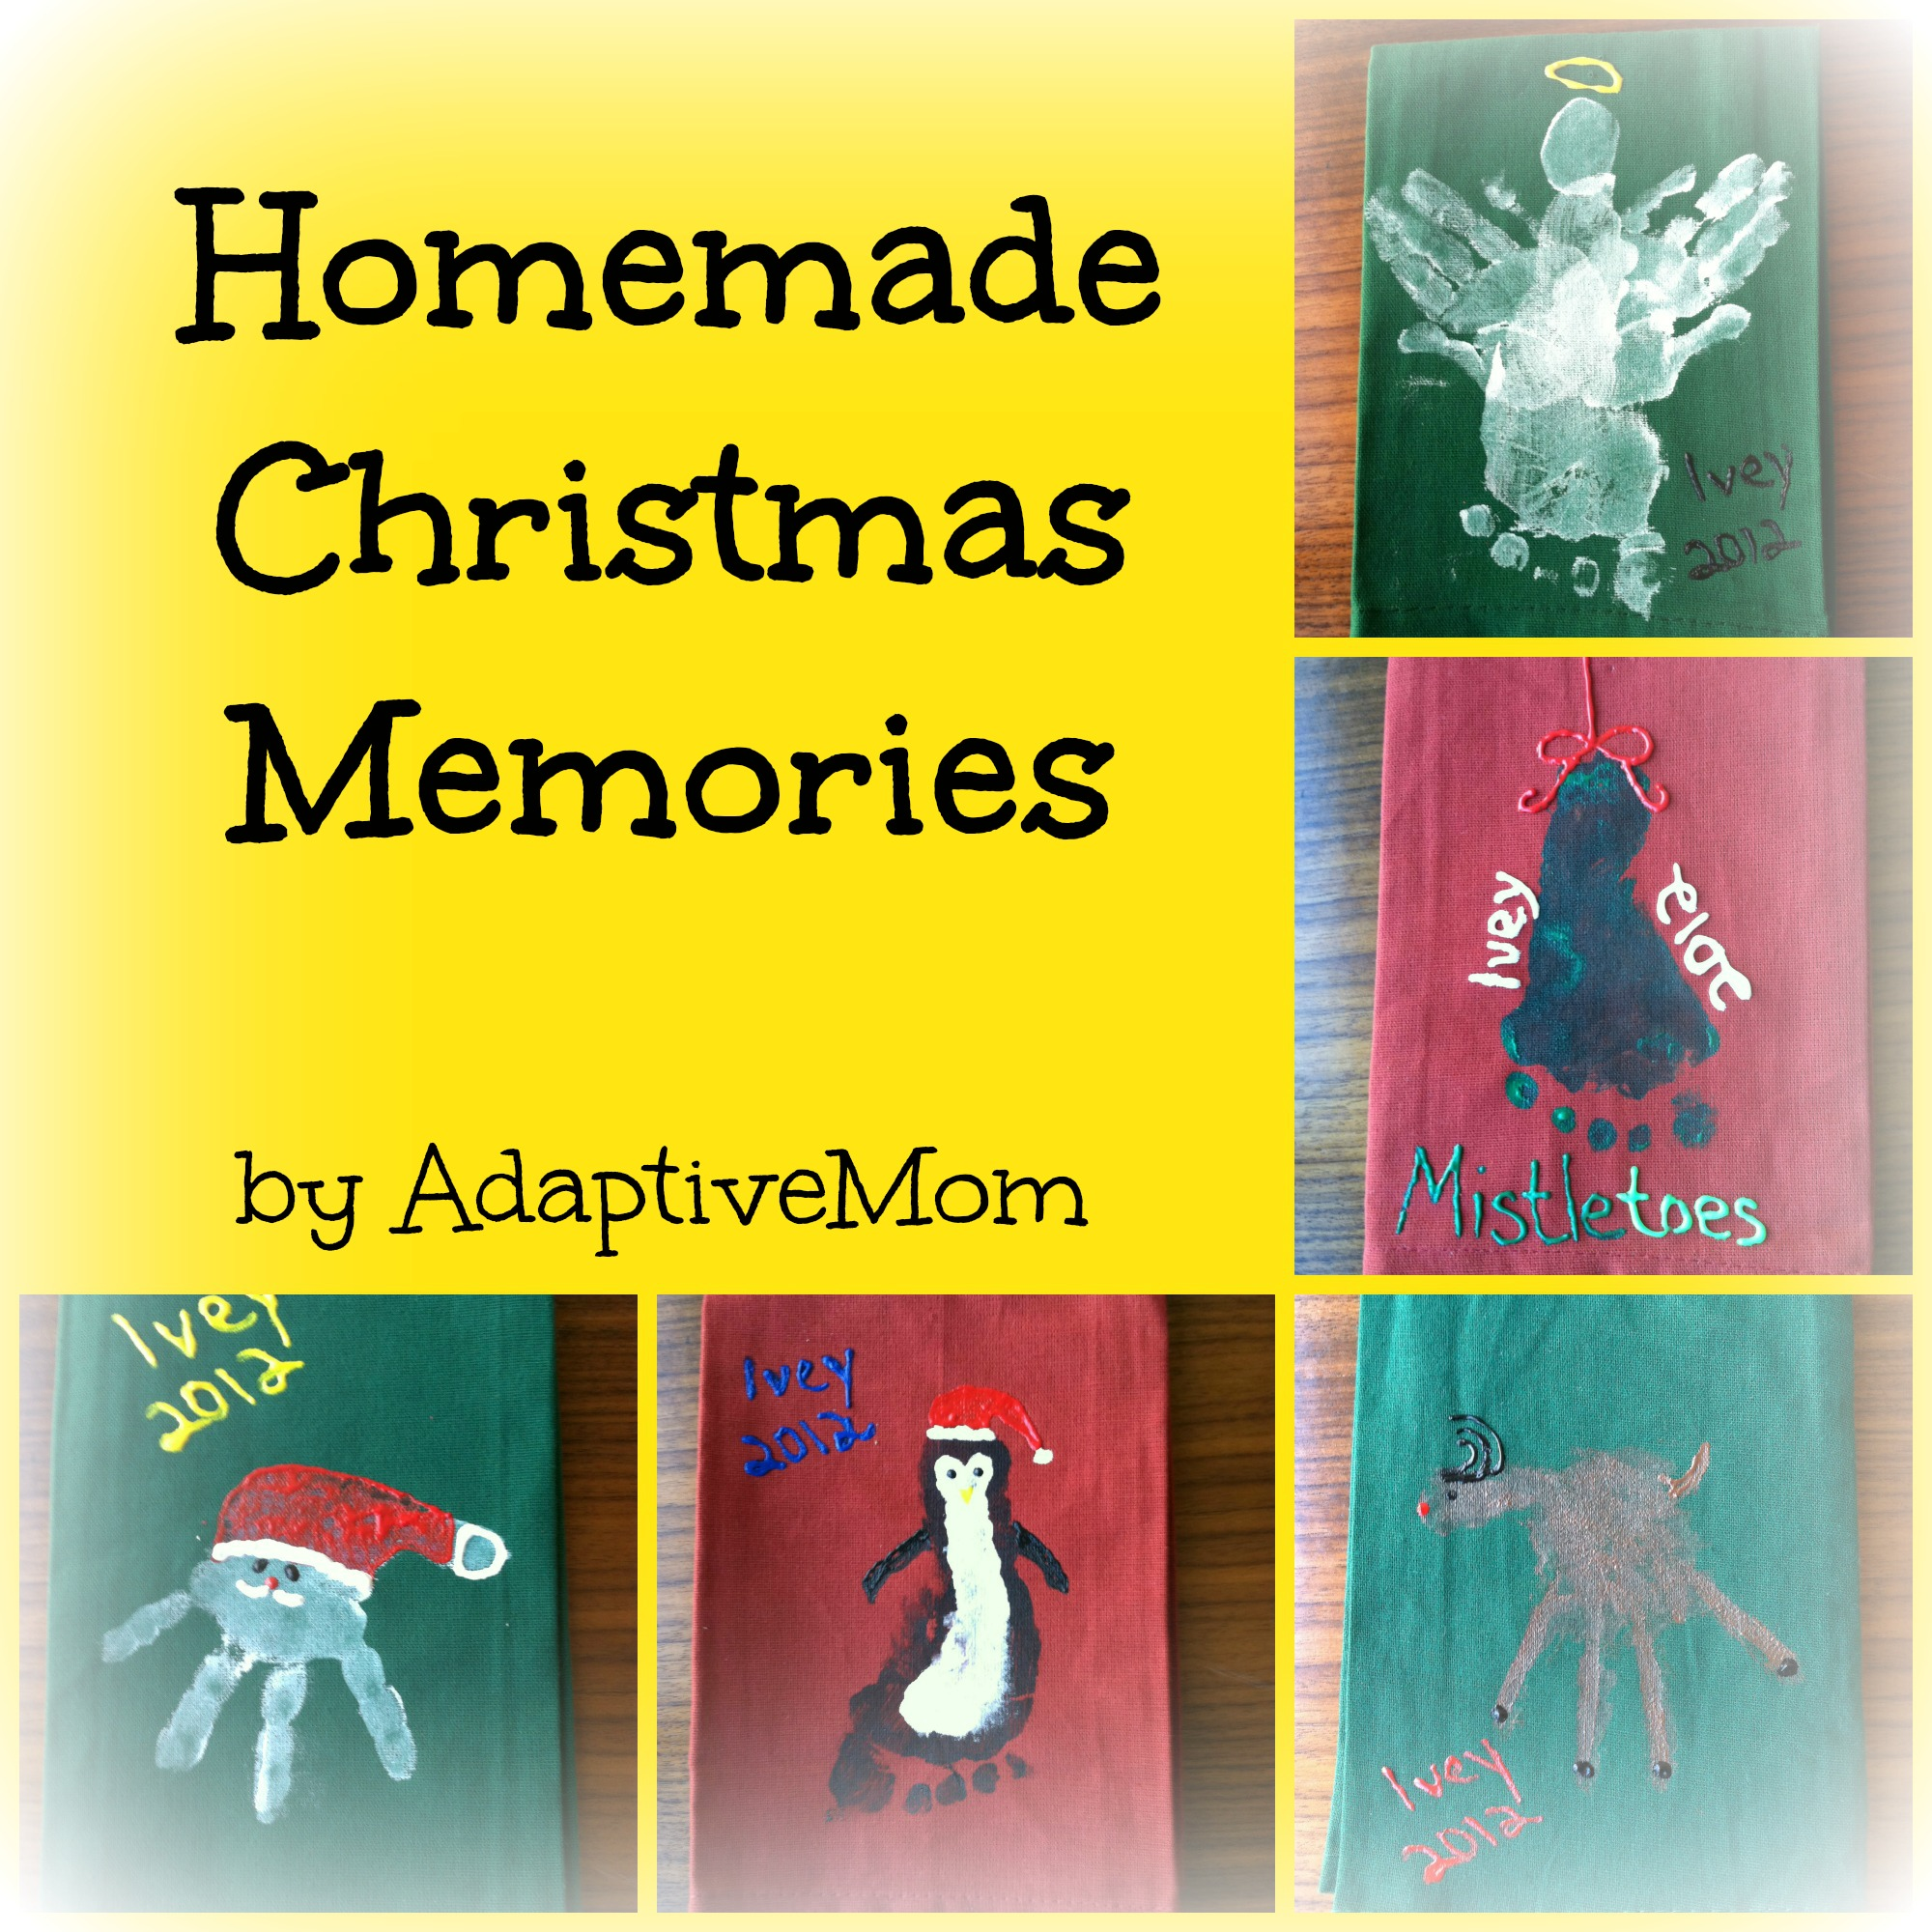 Homemade Christmas Memories Adaptive Mom Dish Towels